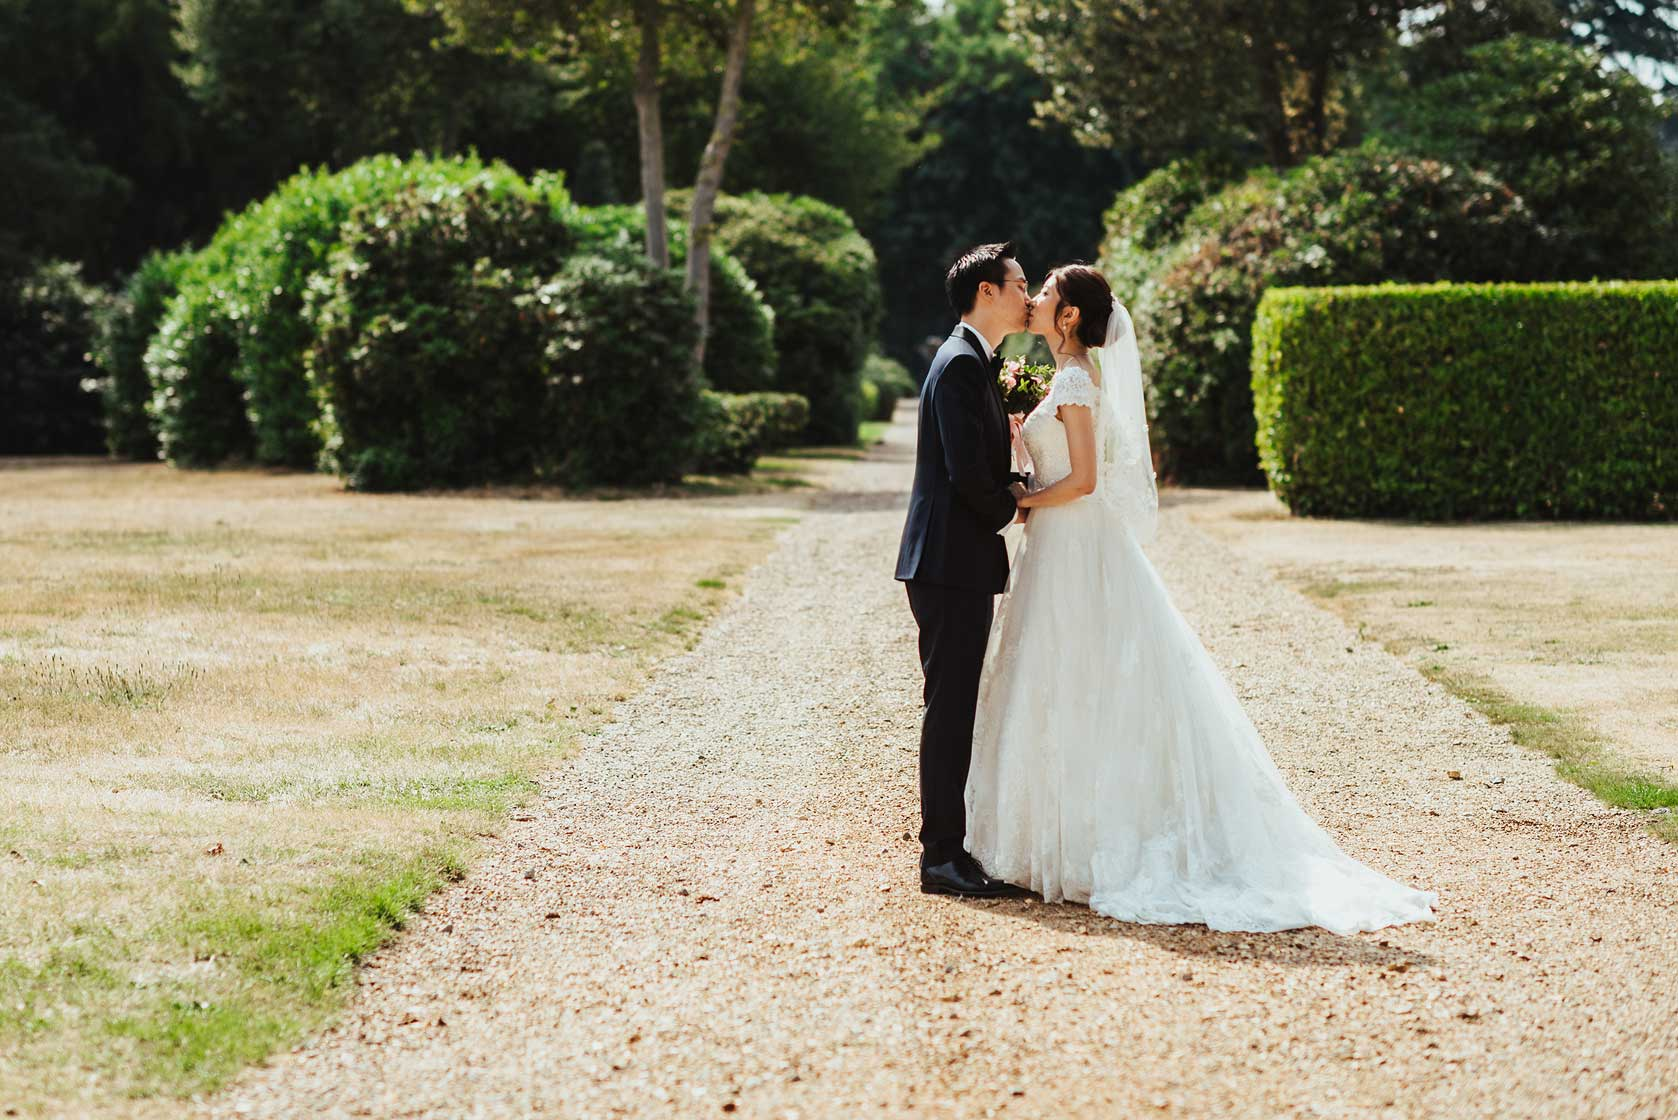 Wedding Photography at Stoke Park